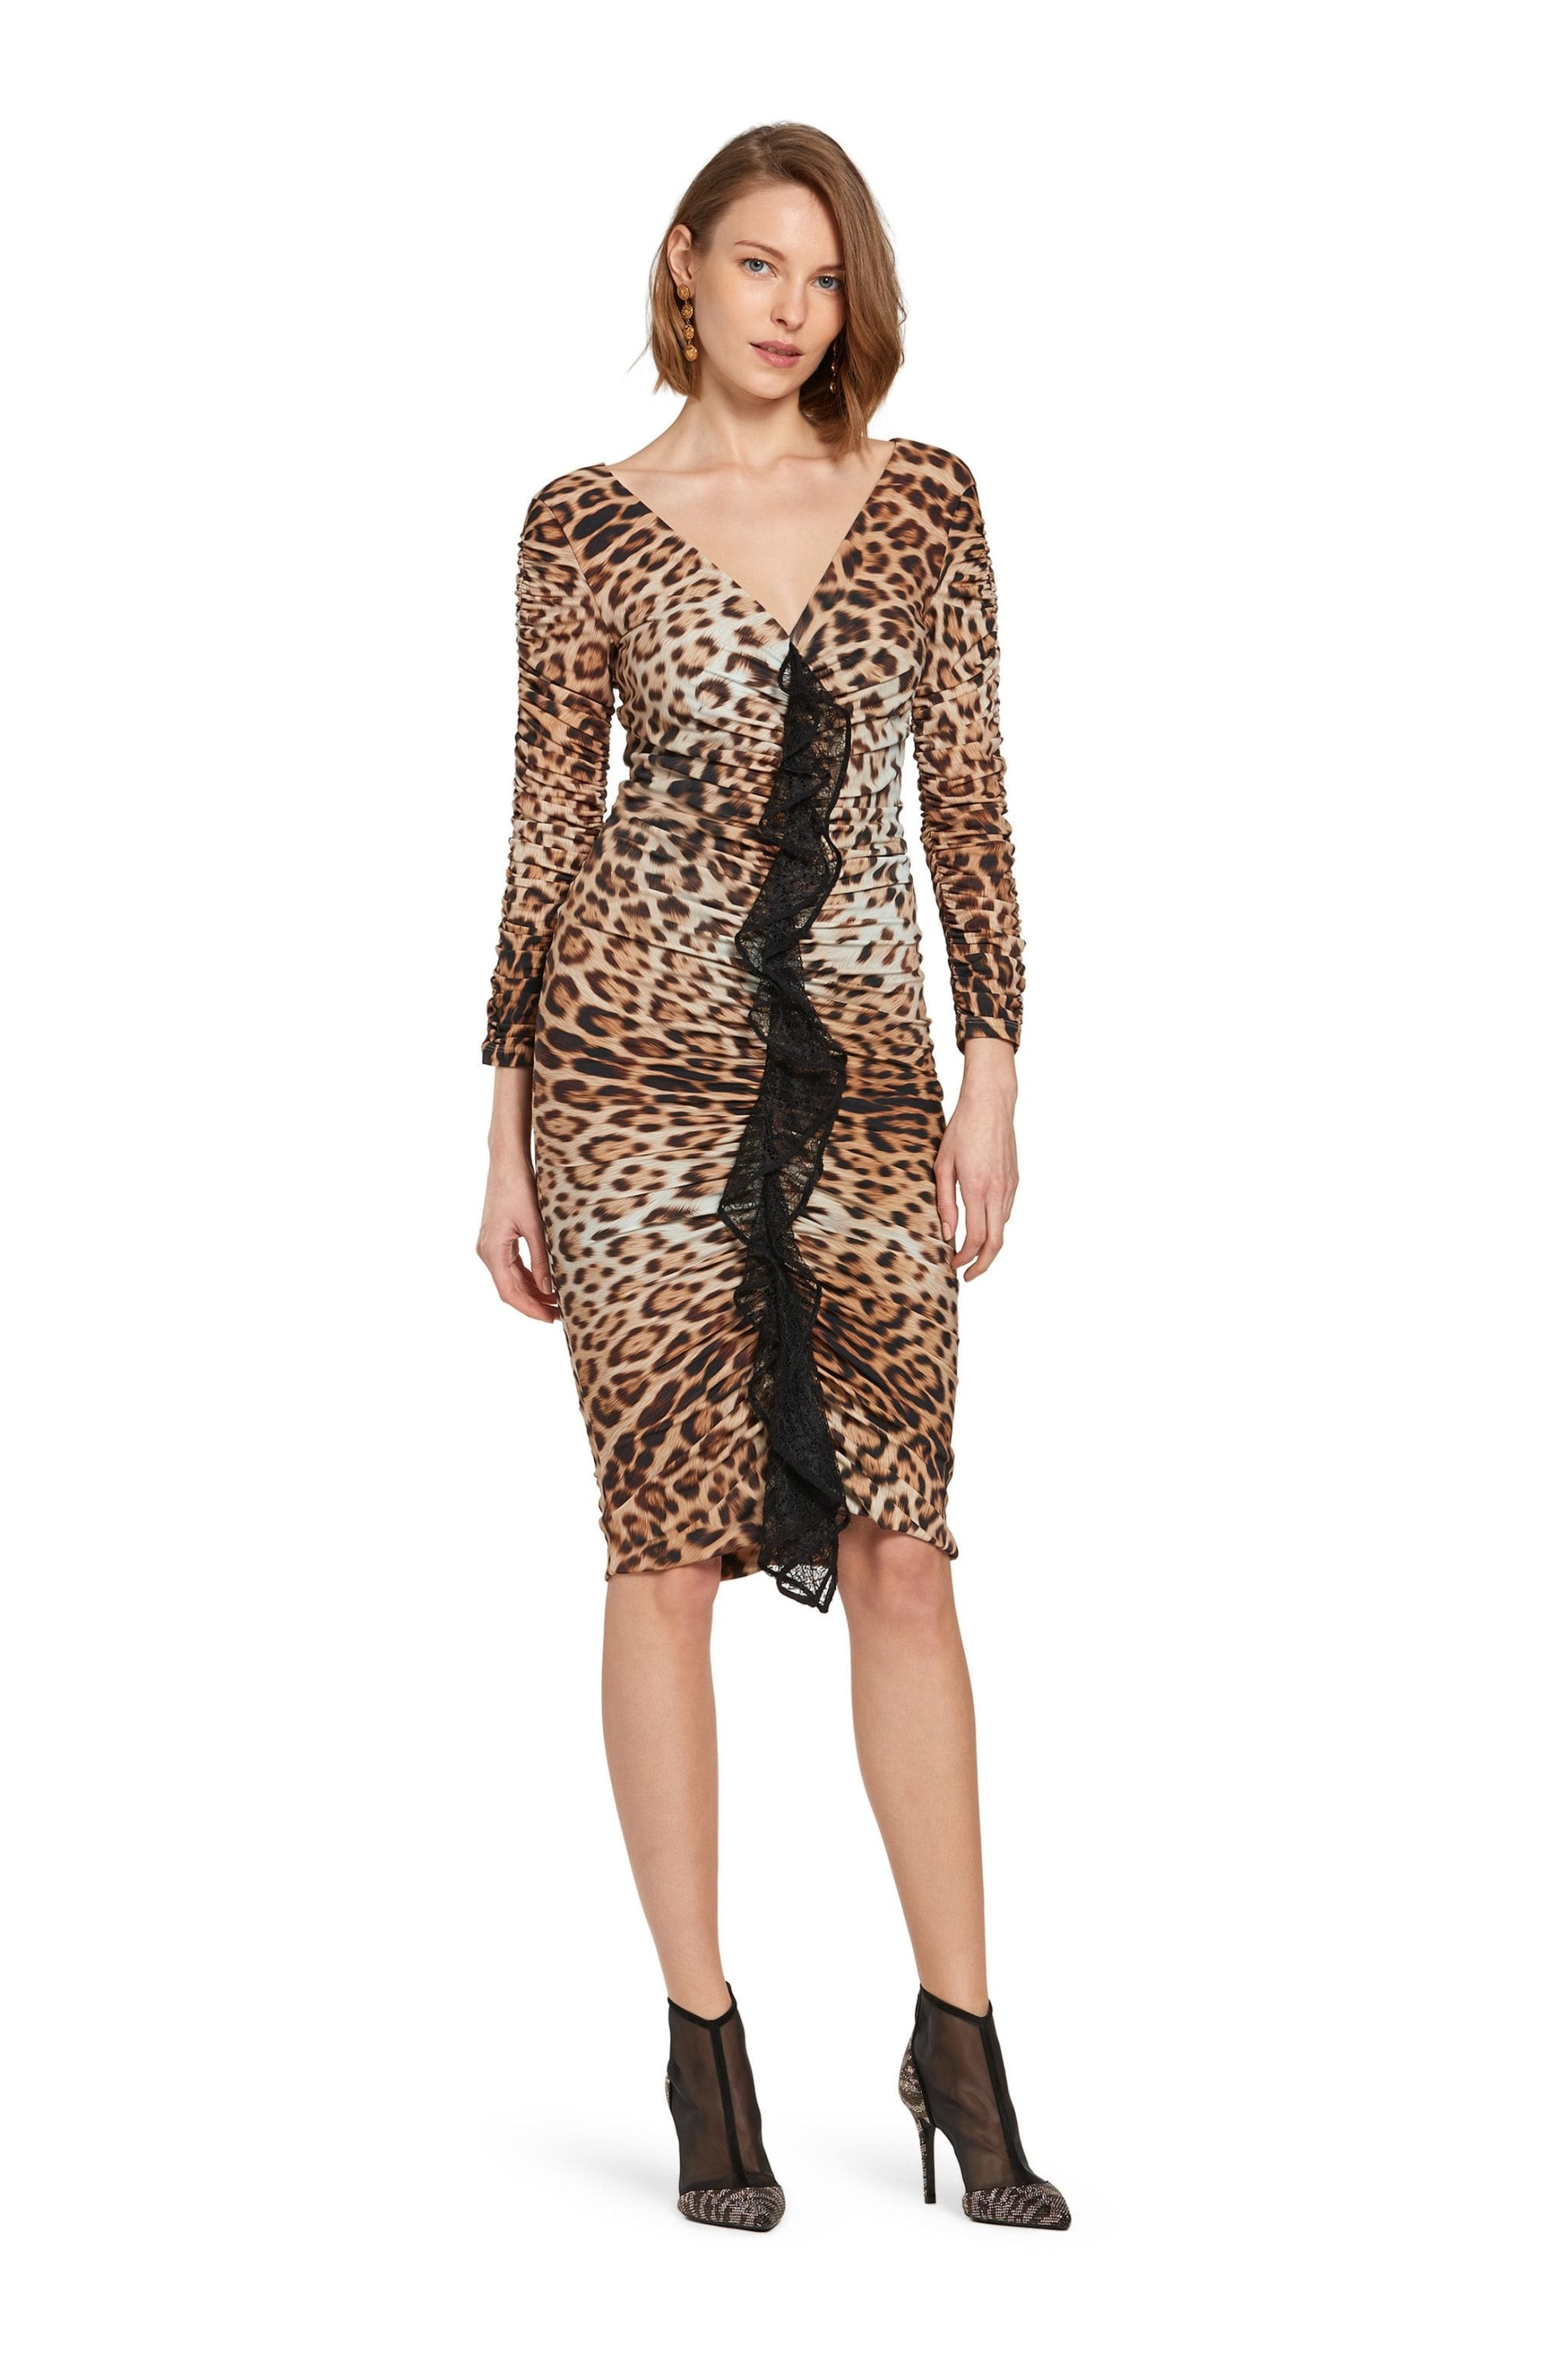 roberto-cavalli-heritage-jaguar-print-ruched-dress_13753611_18866418_2048